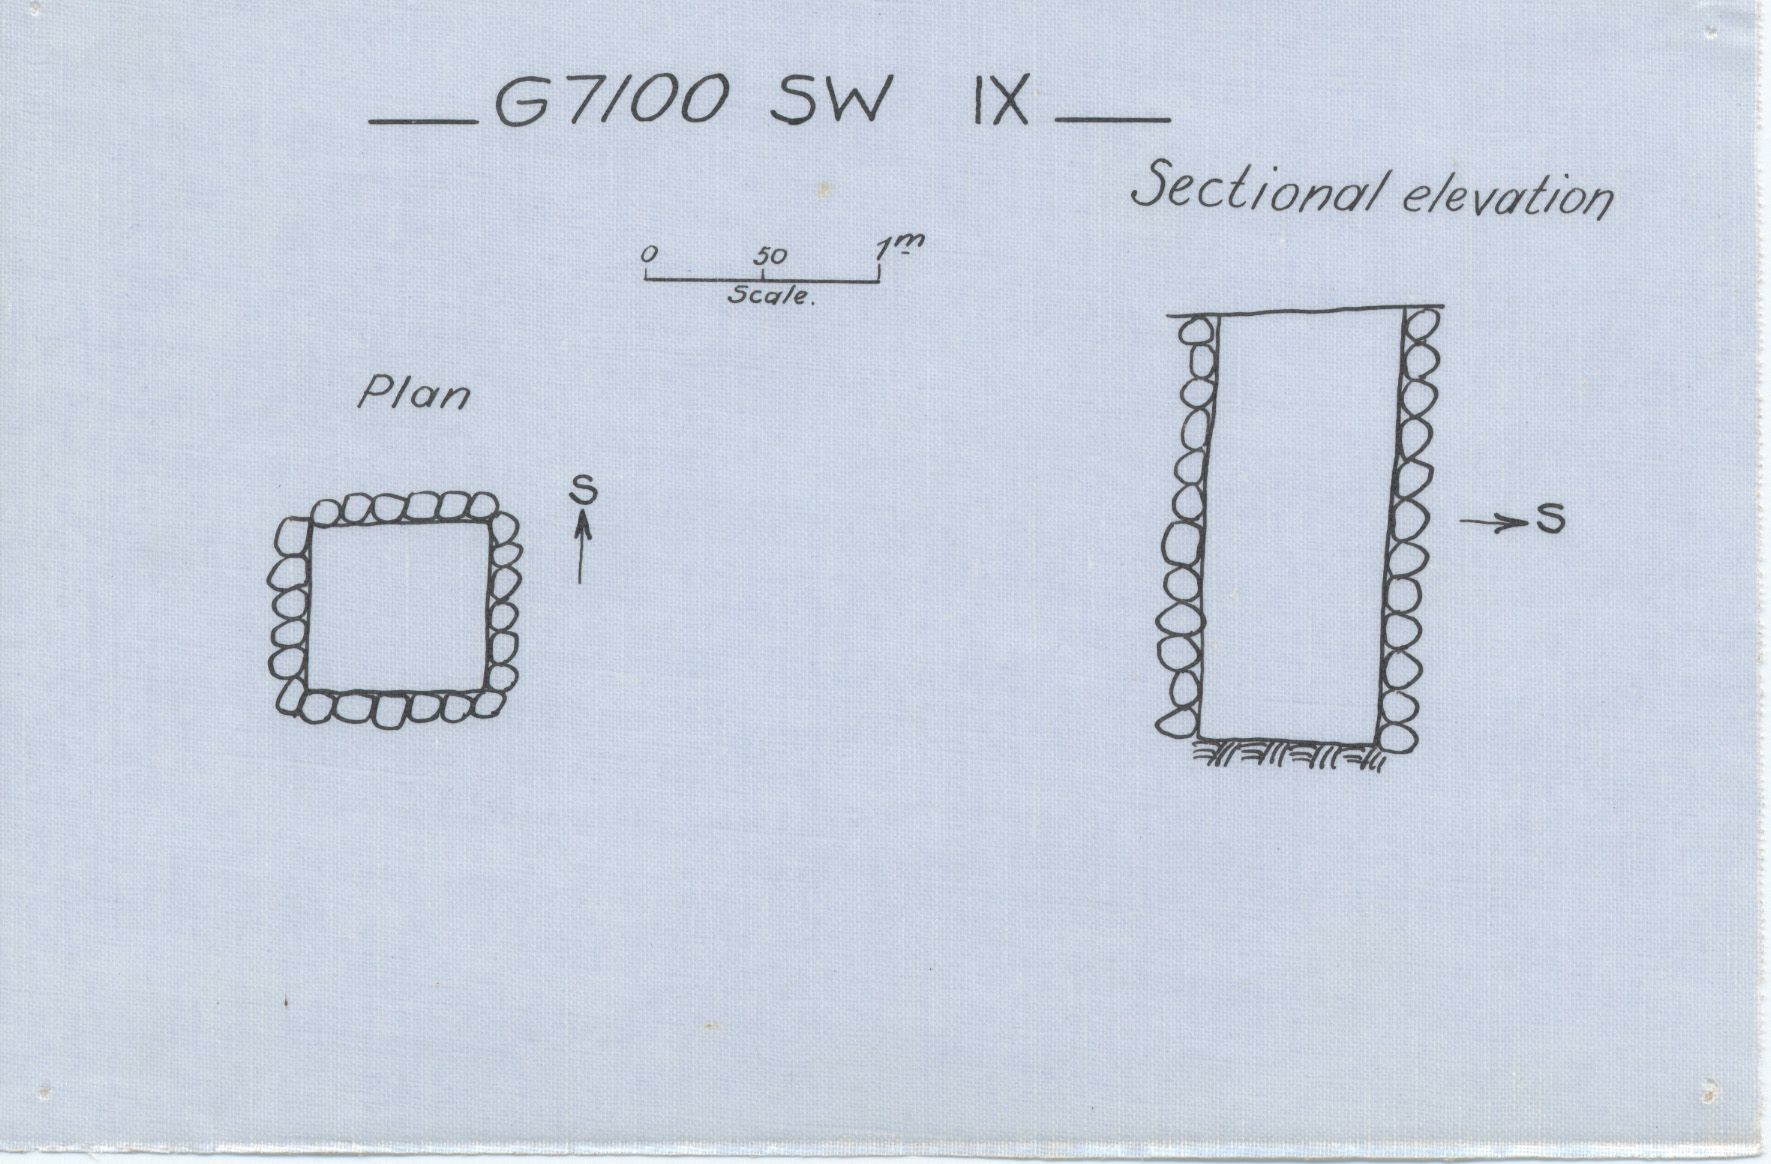 Maps and plans: G 7100 SW 9